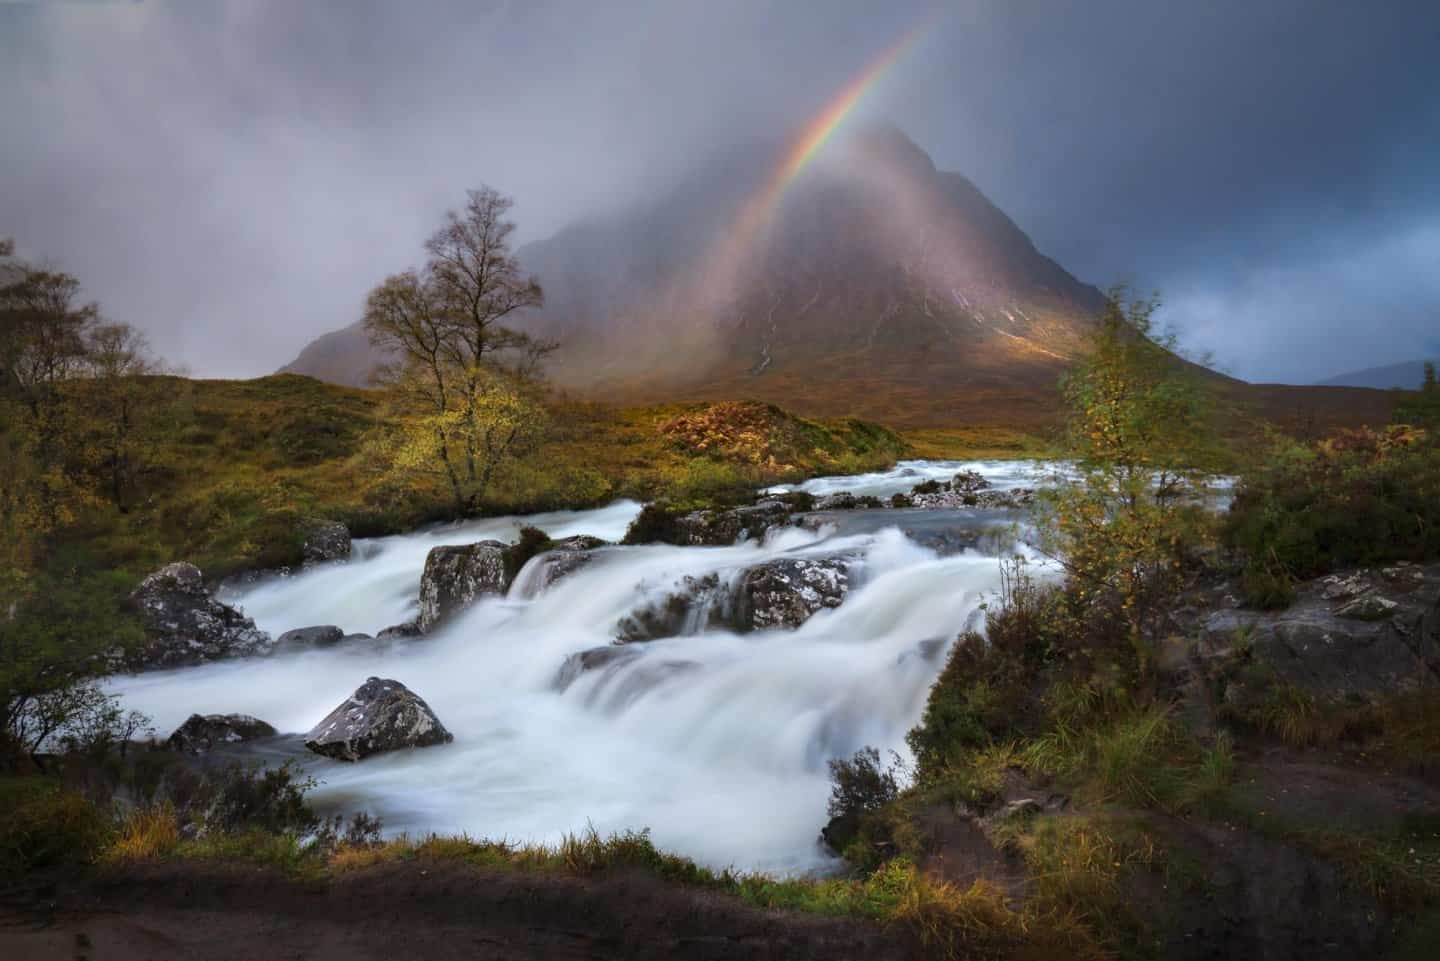 A sudden rainbow bursts out over Etive Mor Waterfall near Glencoe.